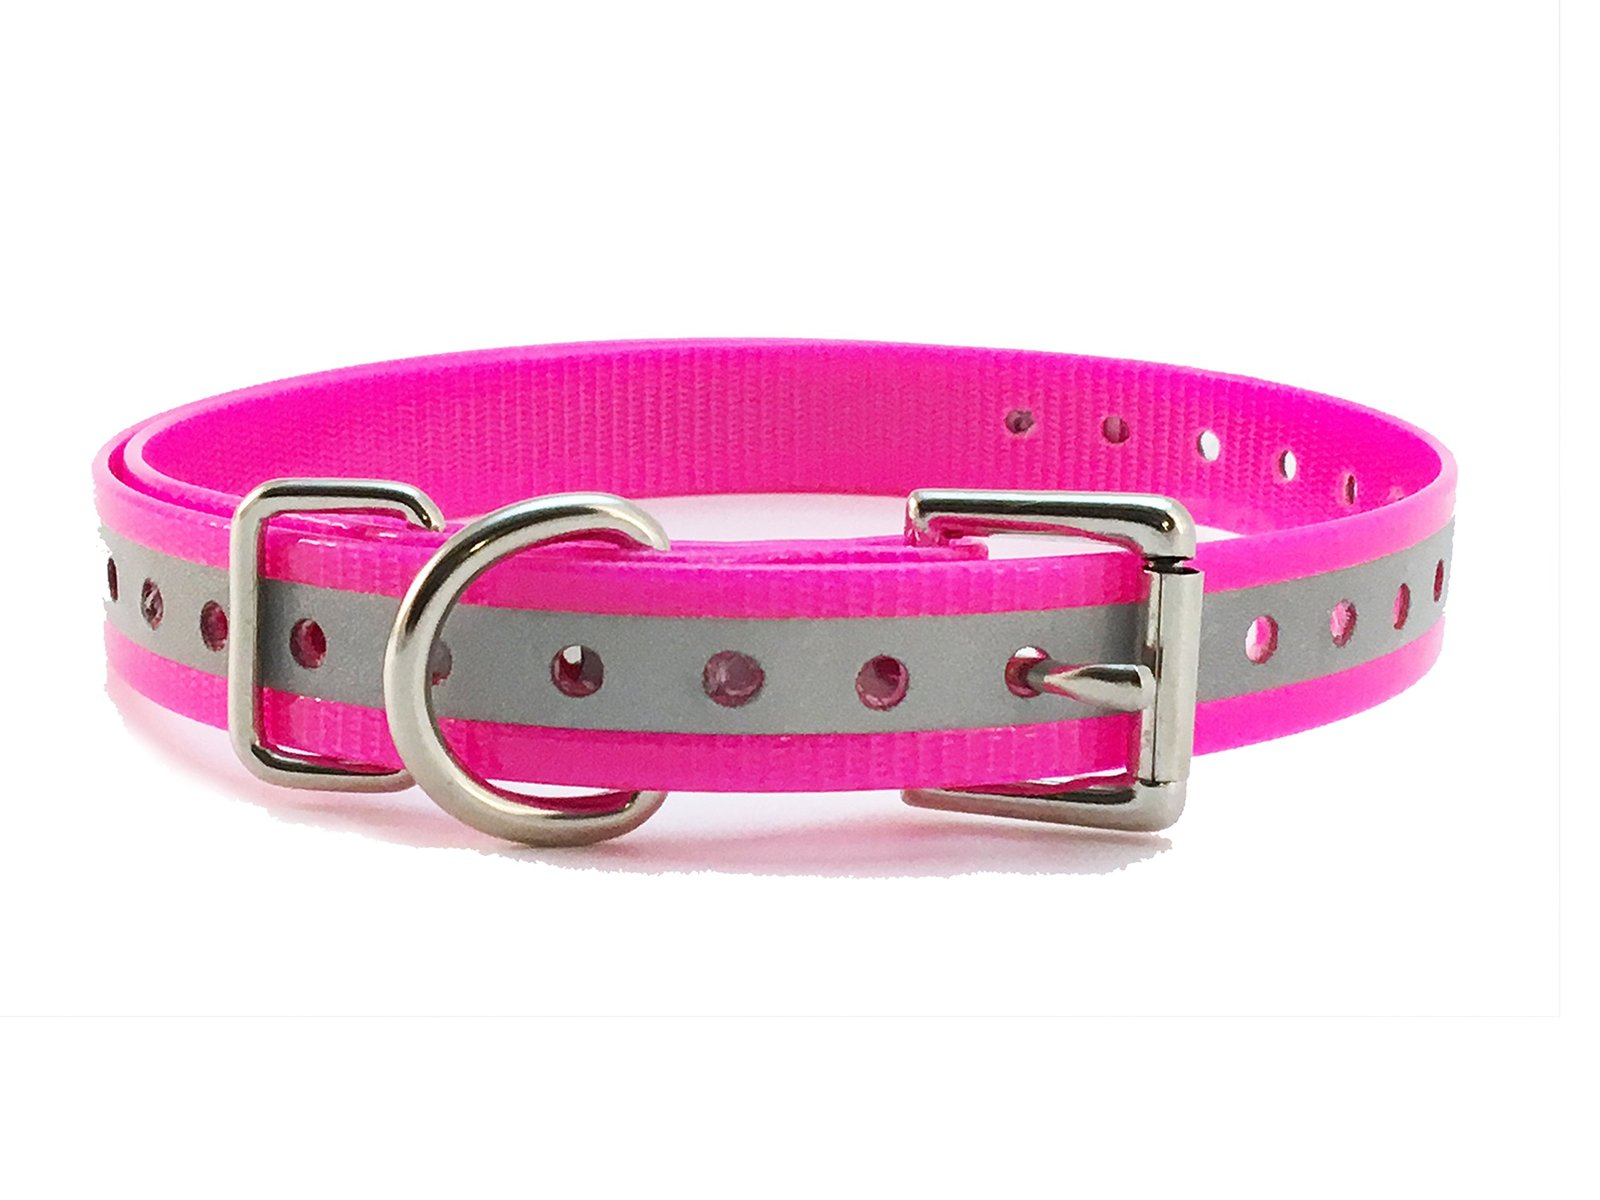 "Sparky PetCo 1"" Roller Buckle High Flex Reflective Pink Waterproof Dog Strap ..."